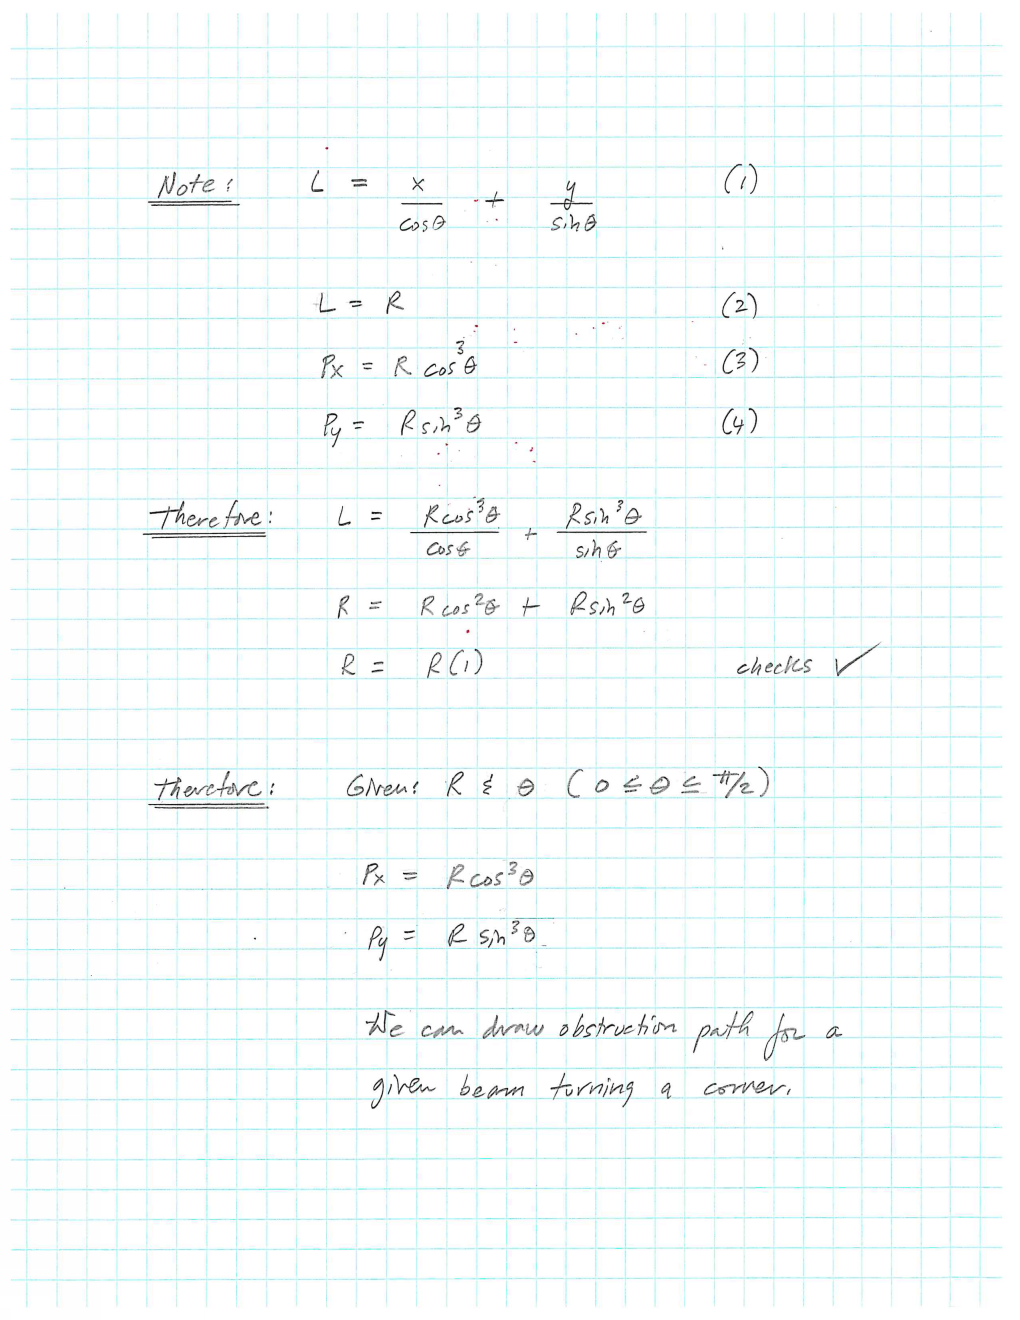 Extent of beam path calculations (4)